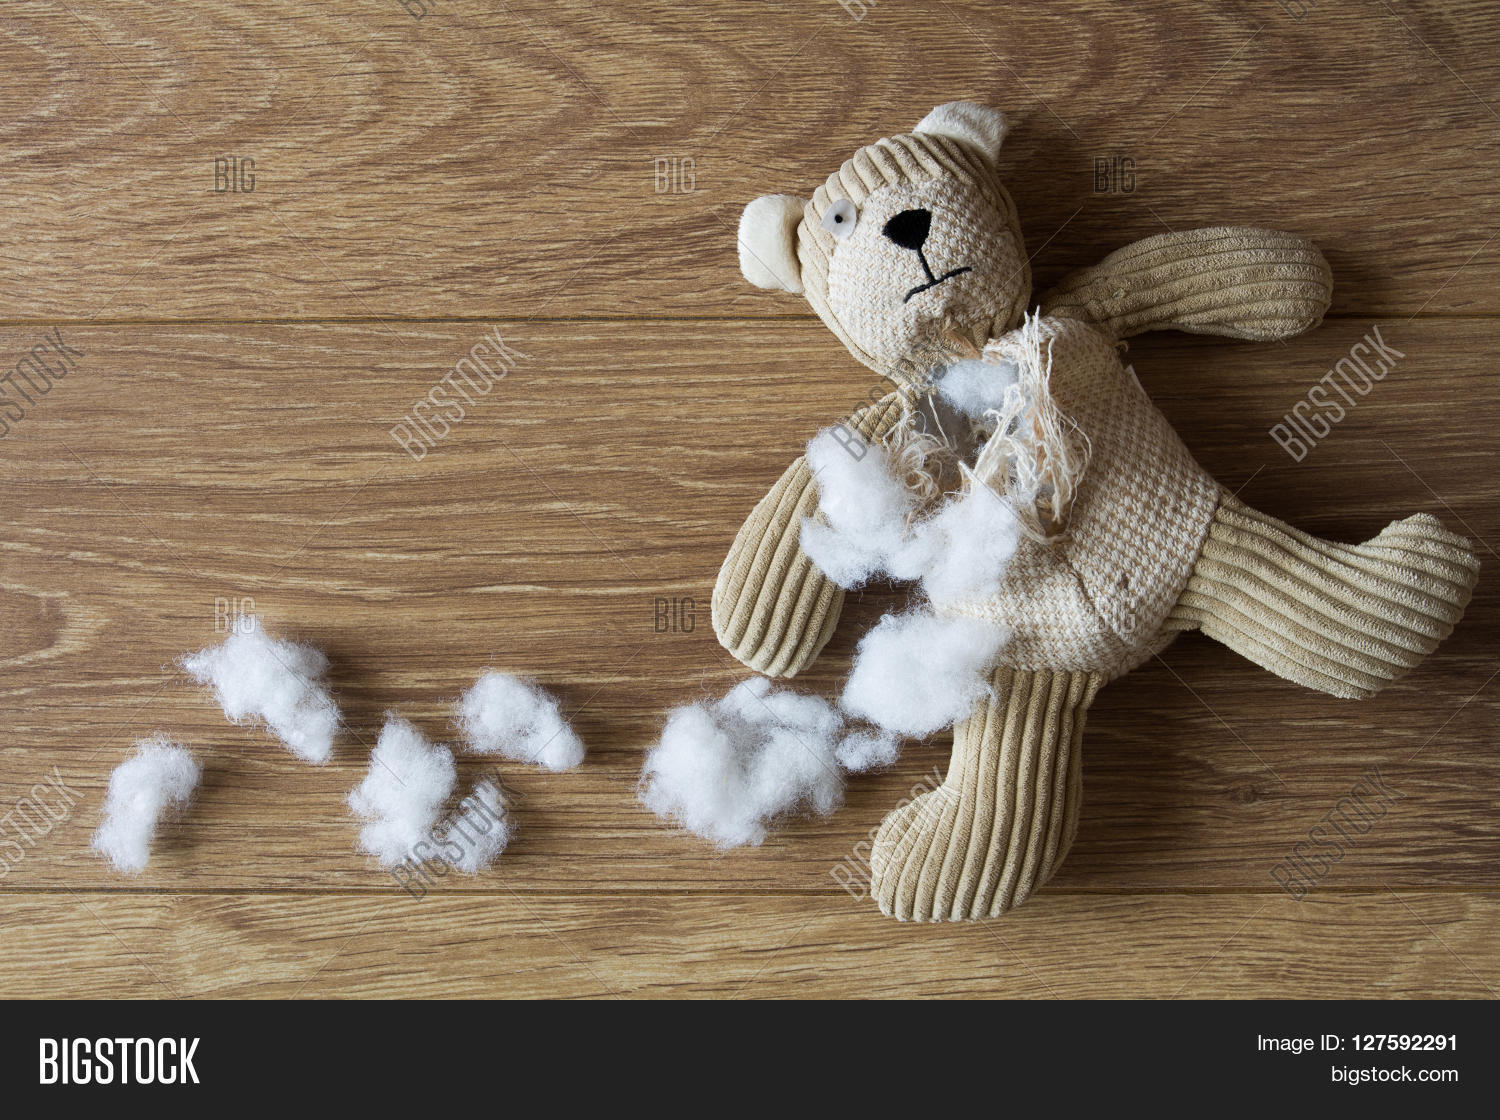 Sad abandoned childs image photo free trial bigstock a sad abandoned childs teddy bear with his stuffing removed and laying on a cold thecheapjerseys Gallery